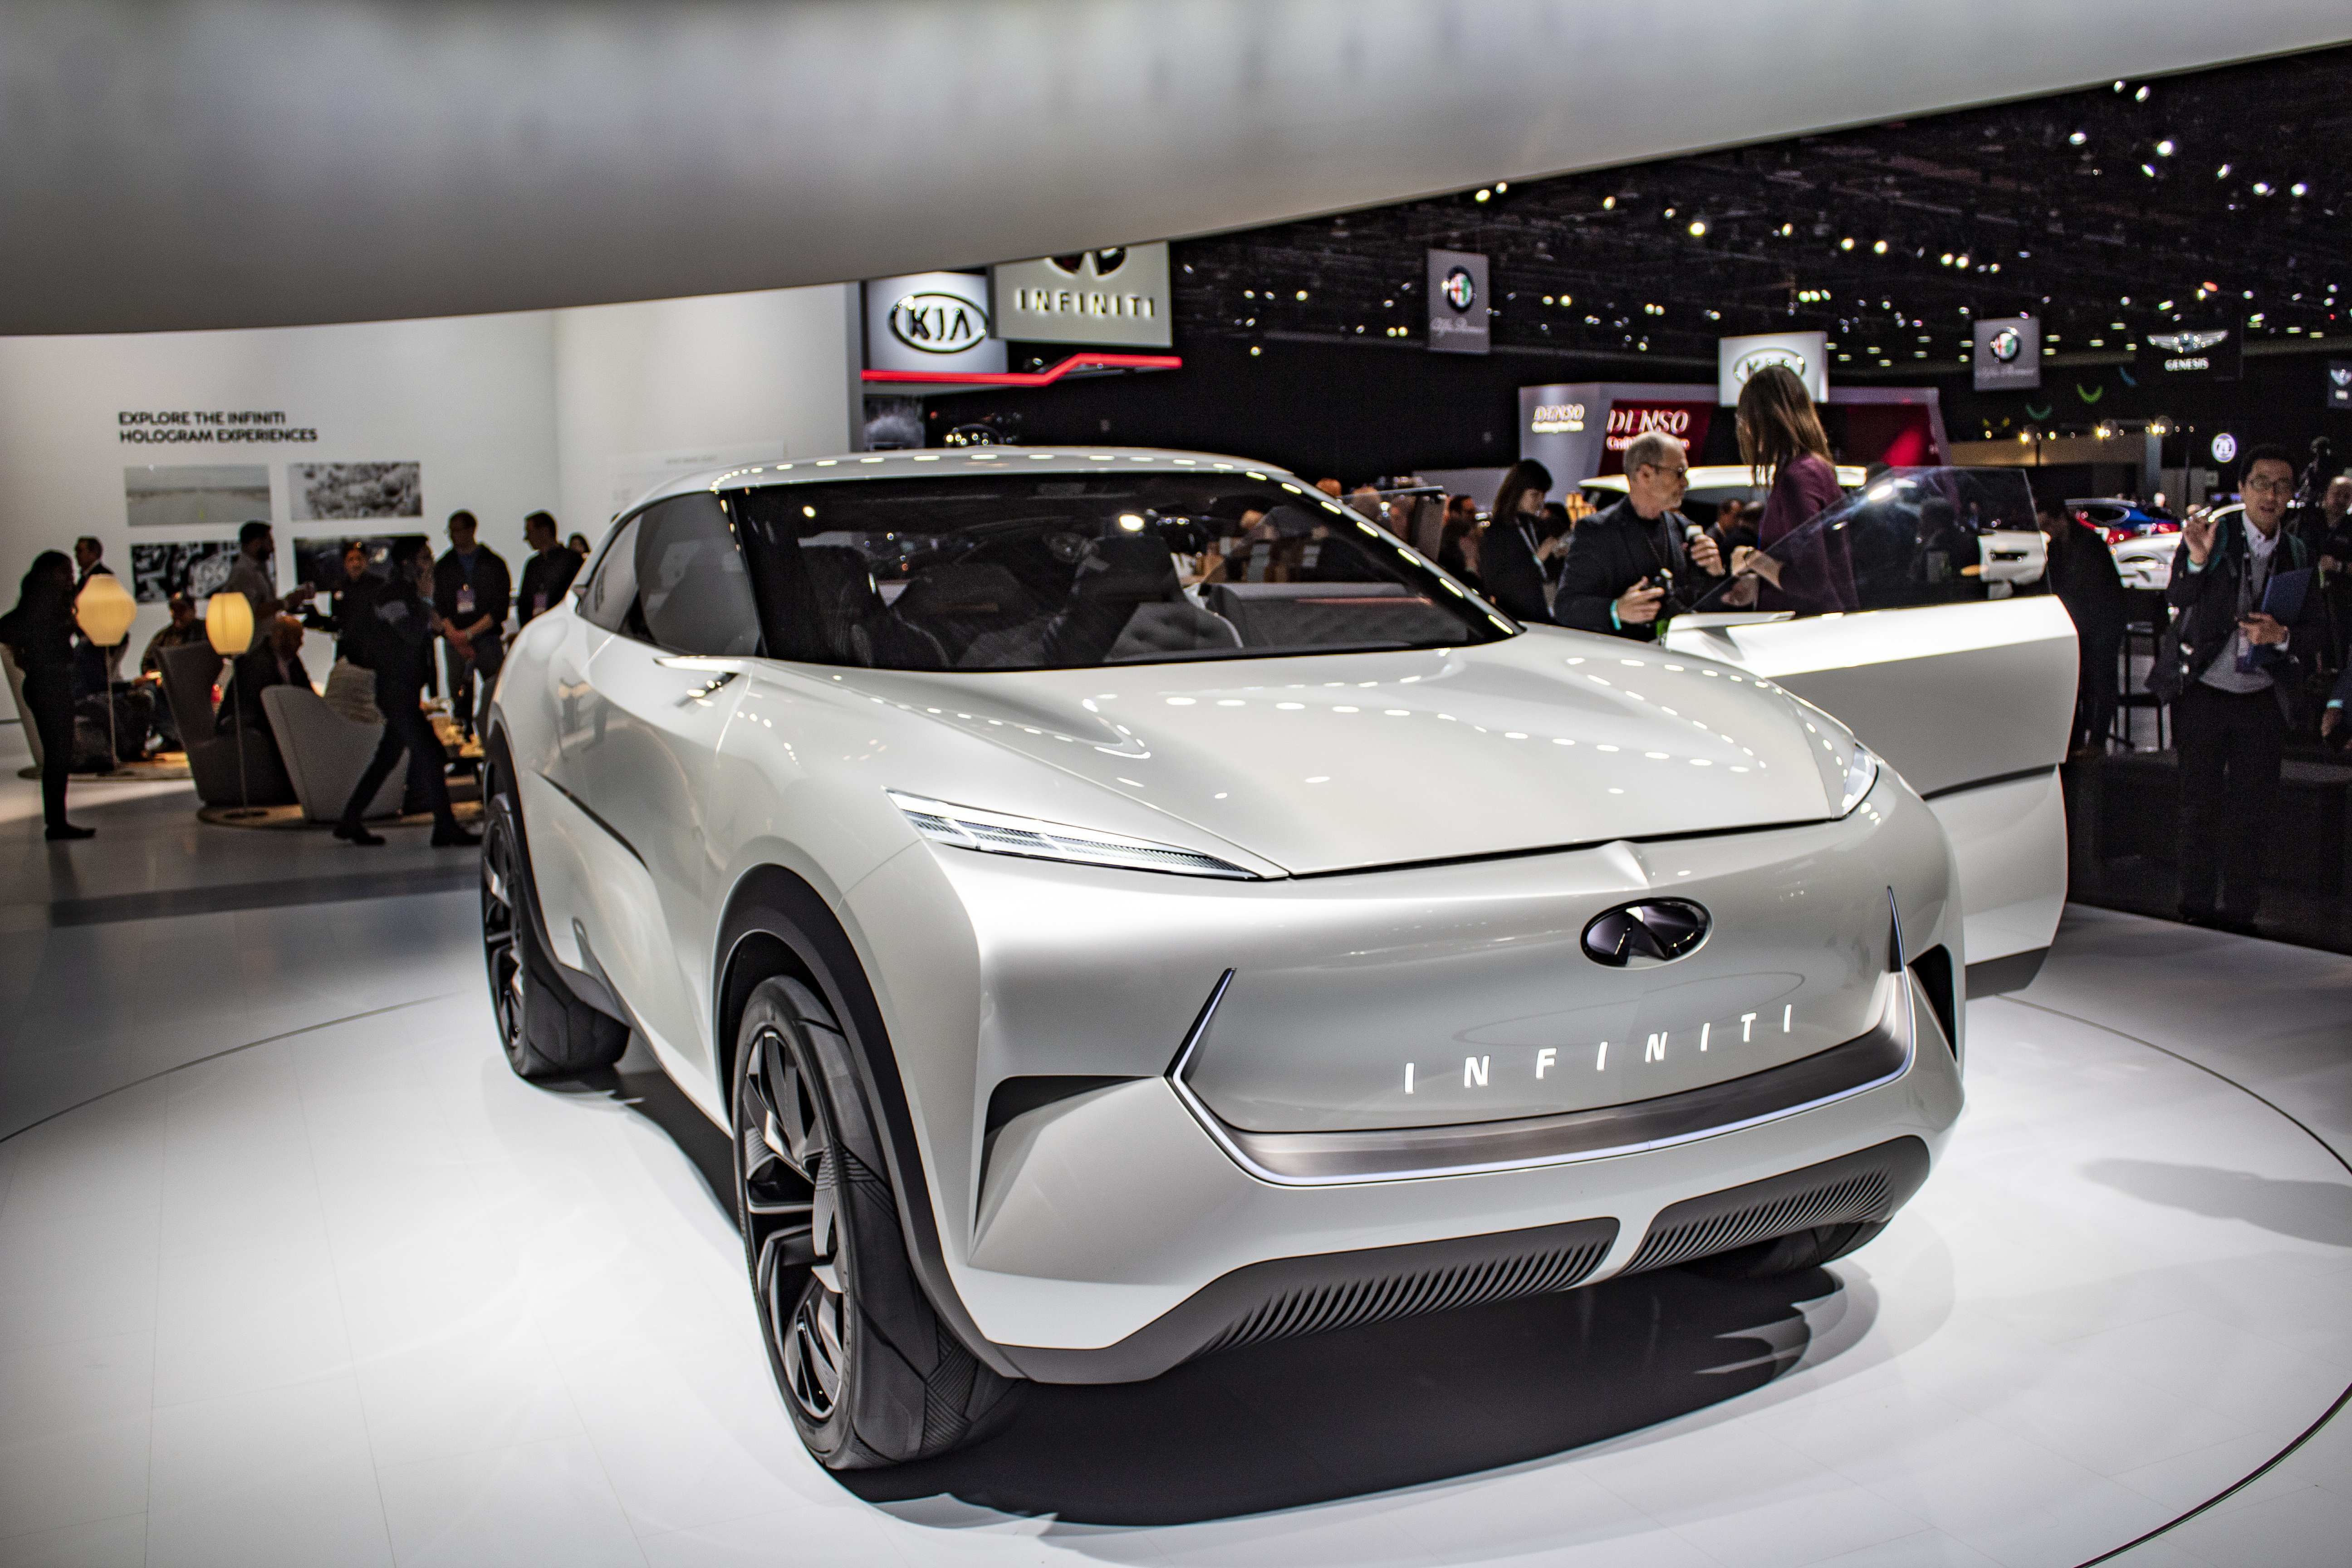 83 Best Review 2019 Infiniti Concept Price for 2019 Infiniti Concept